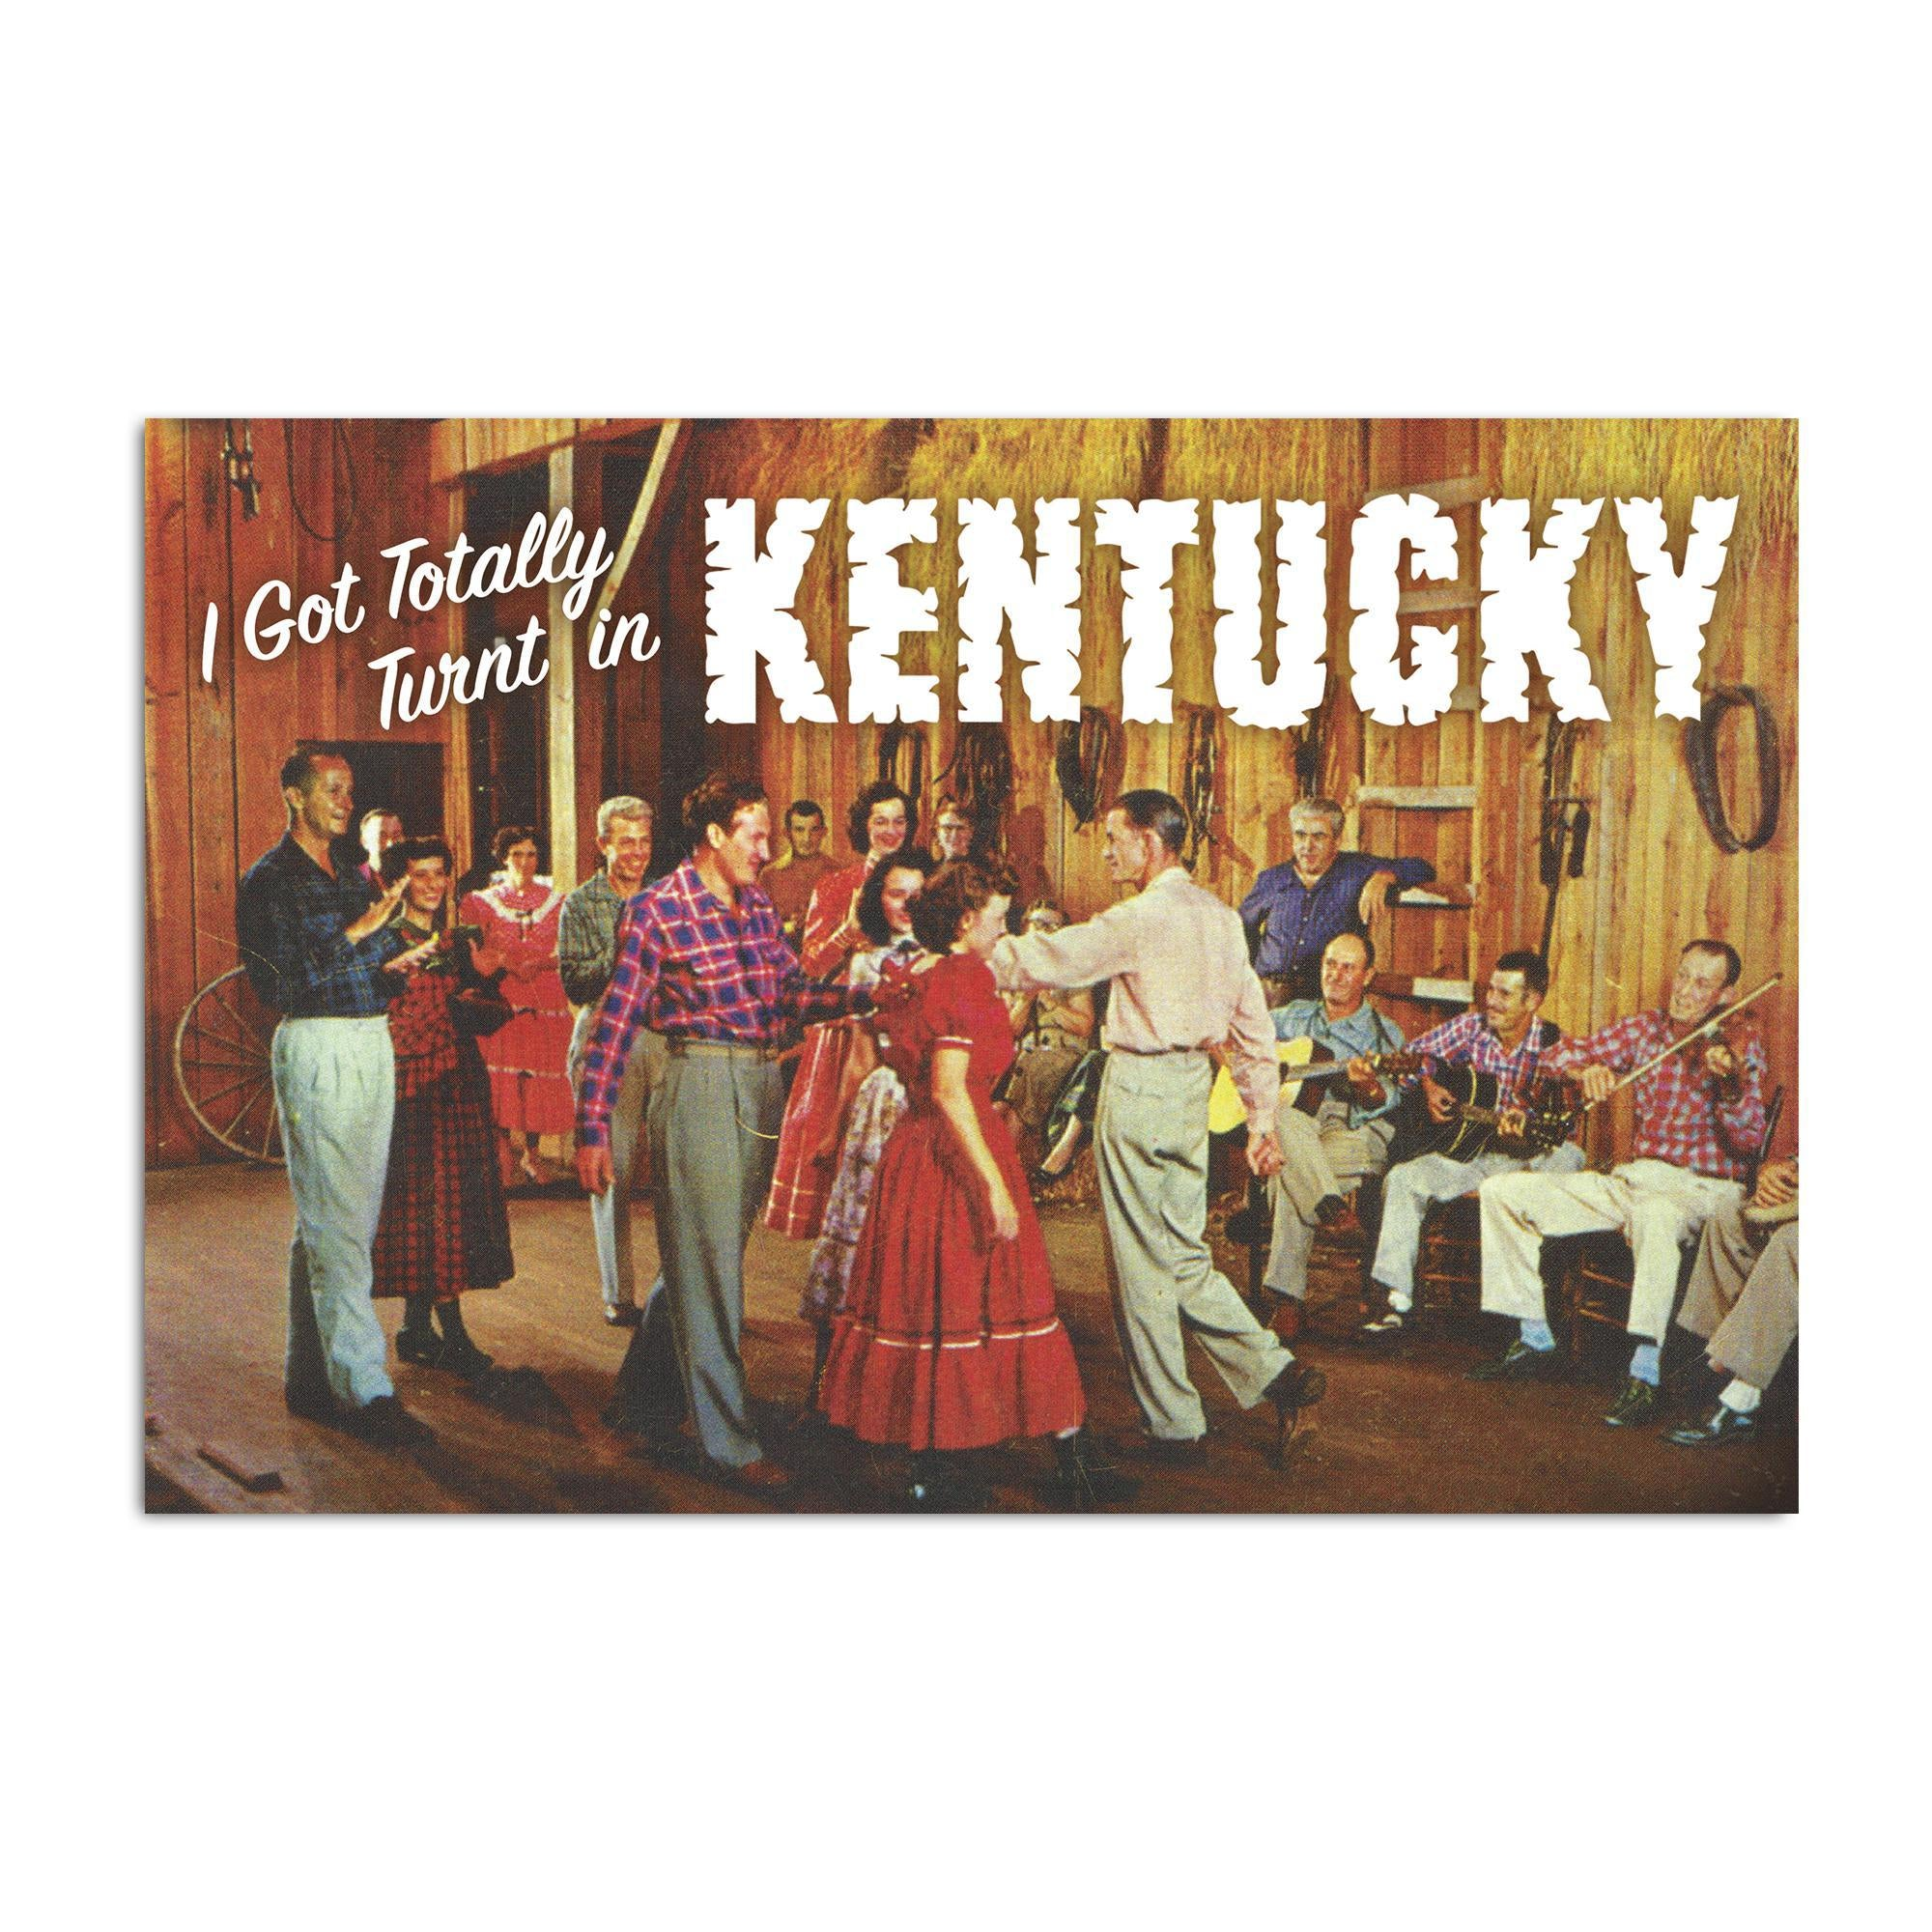 Turnt In Kentucky Postcard-Odds and Ends-KY for KY Store